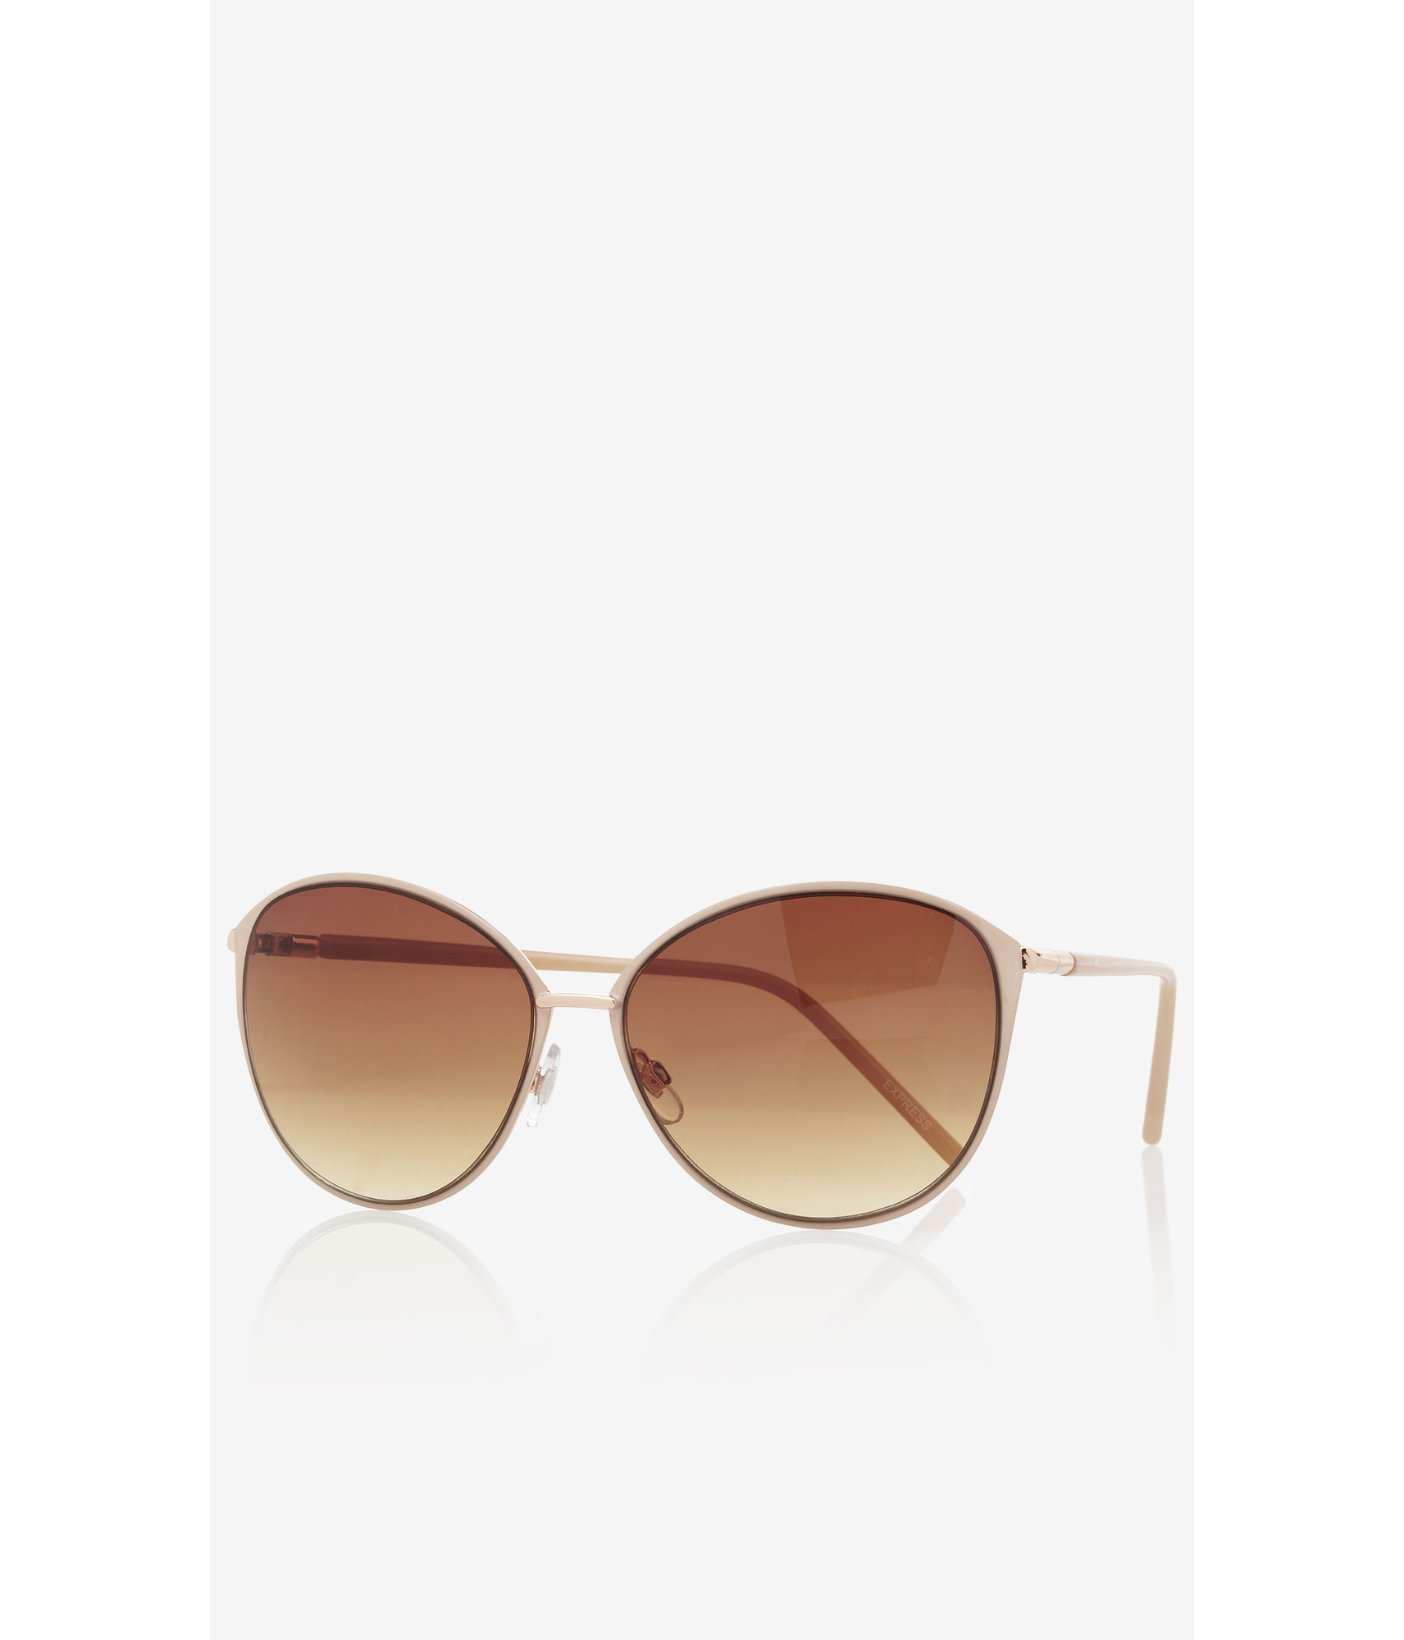 Lyst - Express Metal Frame Cat Eye Sunglasses in Natural